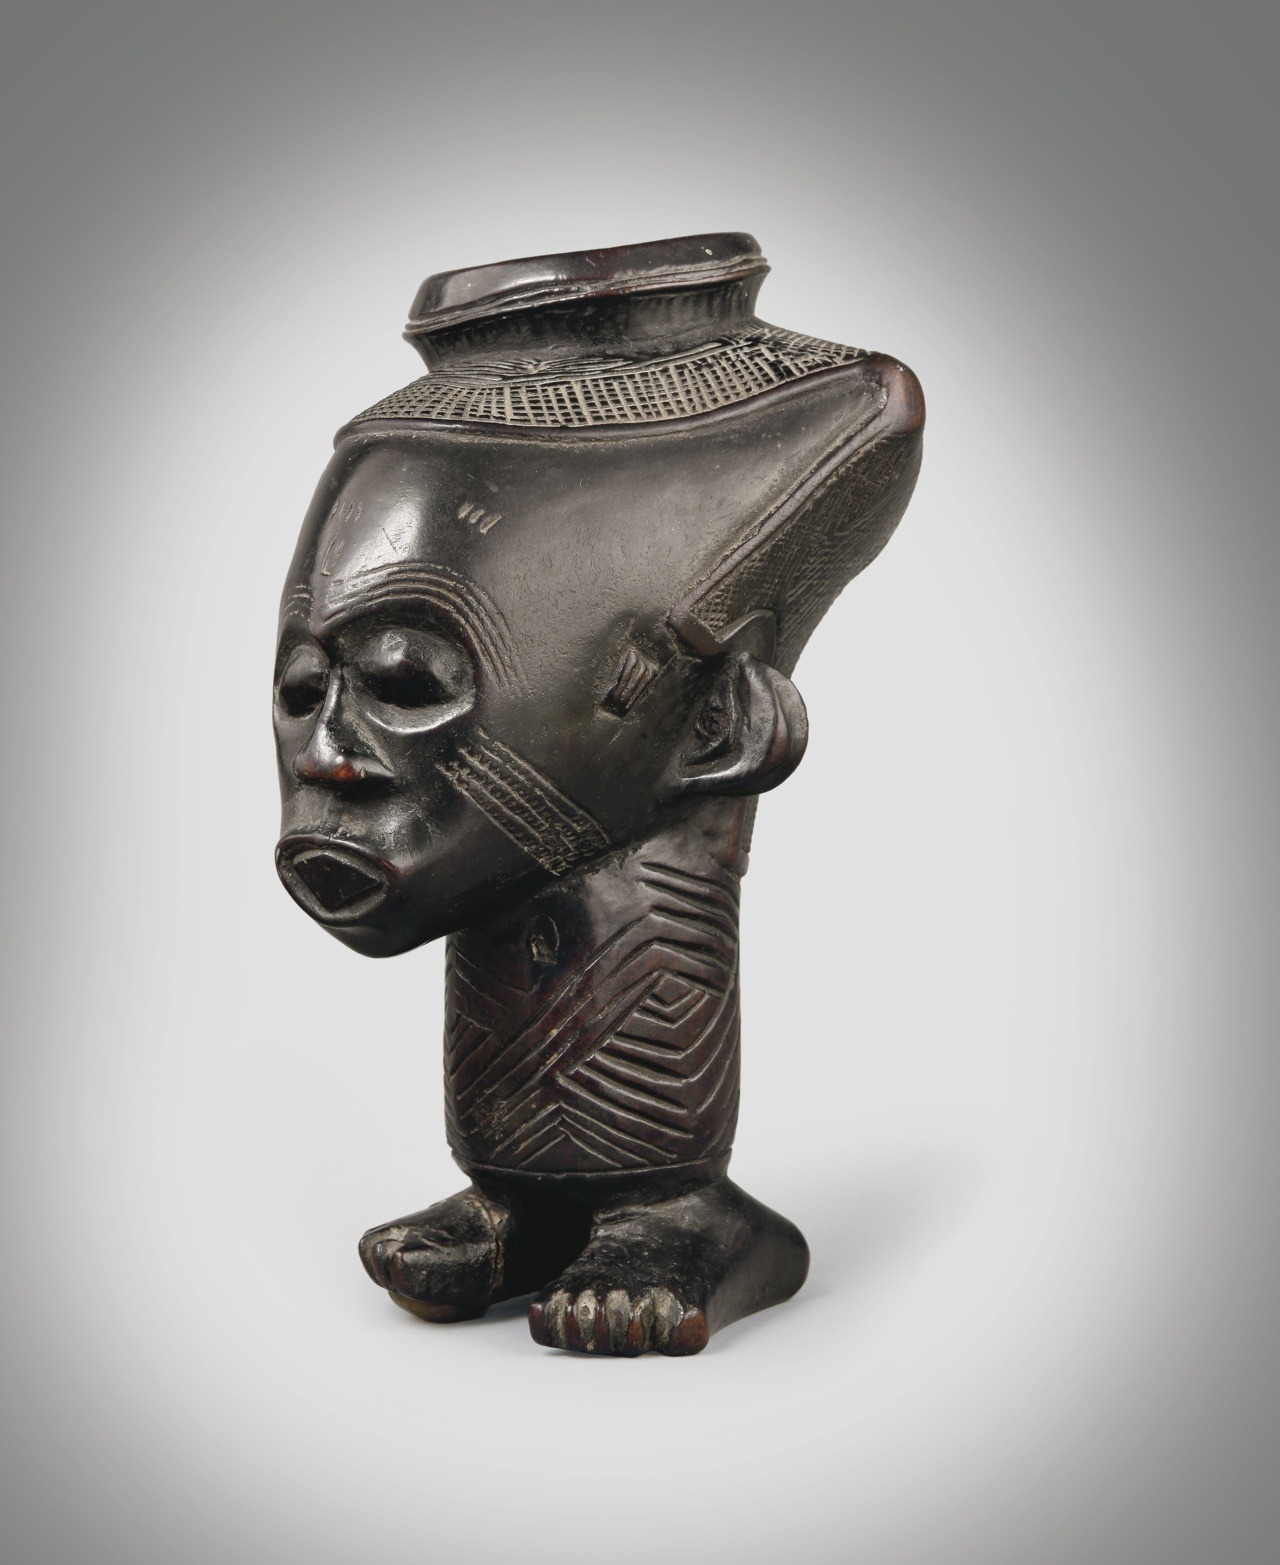 christiesauctions:  Kuba Anthropomorphic Cup, Democratic Republic of Congo Arts of Africa, Oceania and the Americas Including Property from the Estate of Ernst Beyeler